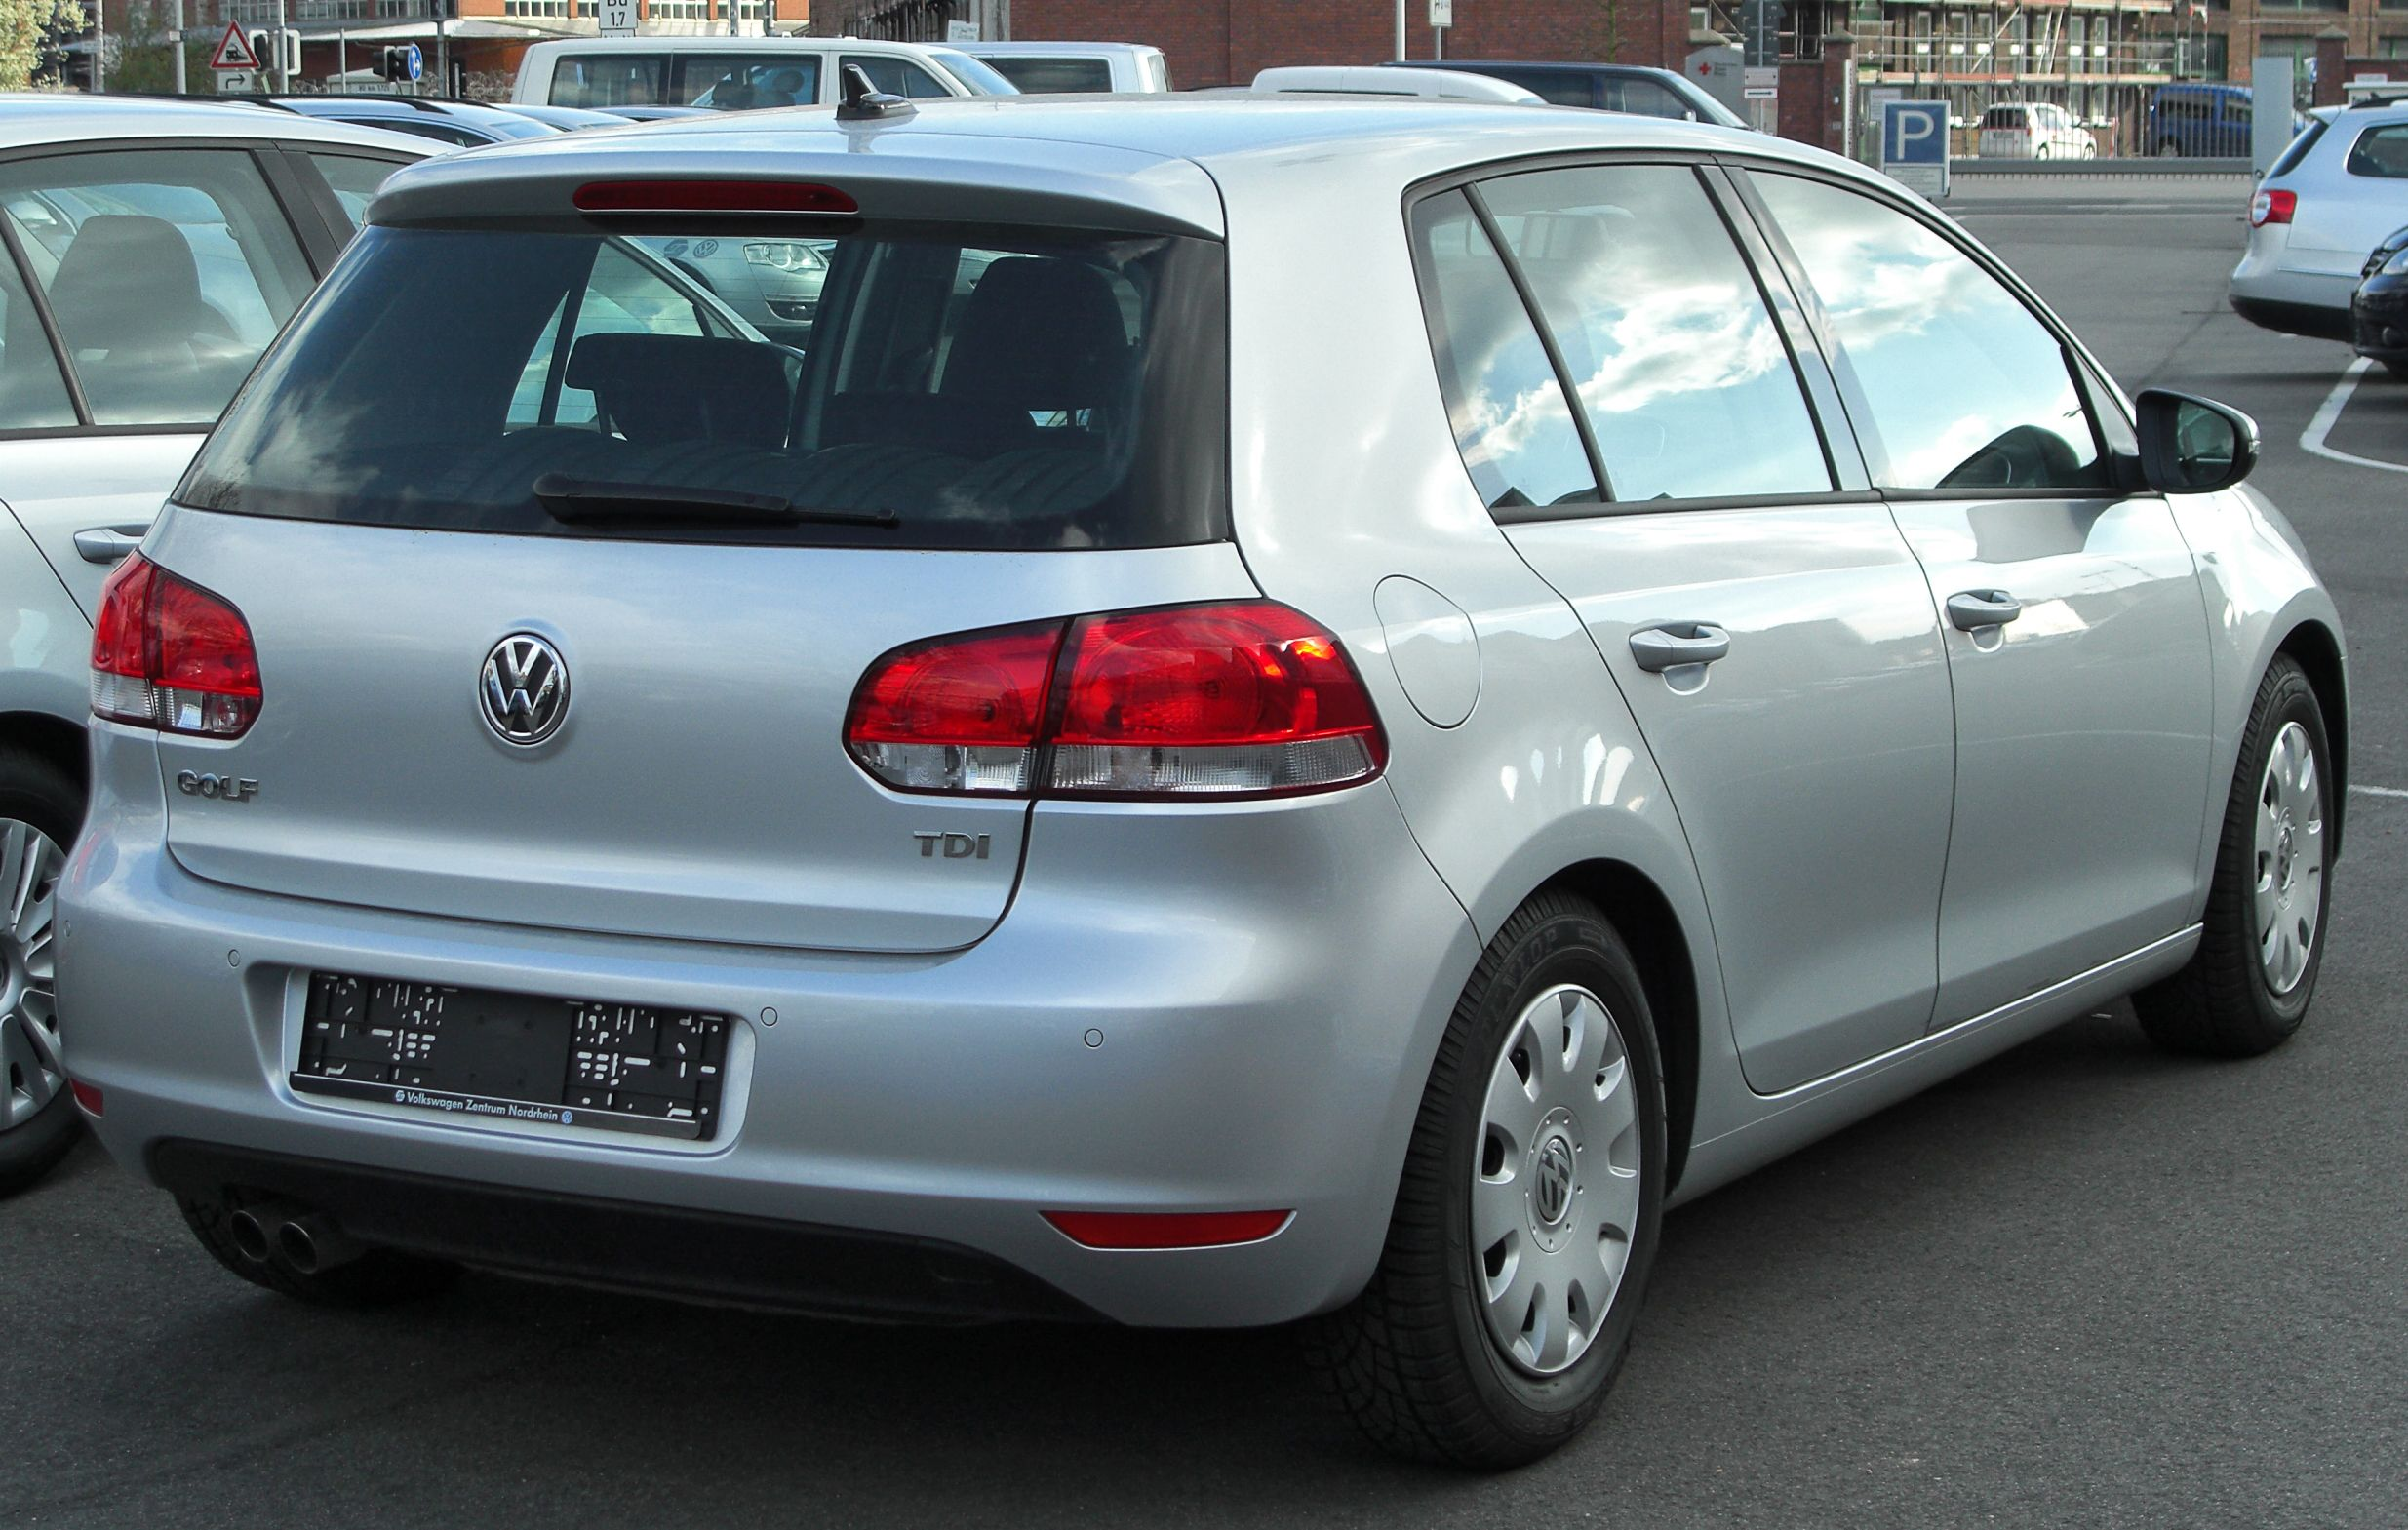 Volkswagen Golf 6 Tdi Come Check Out Amsoil Synthetic Motor Oil